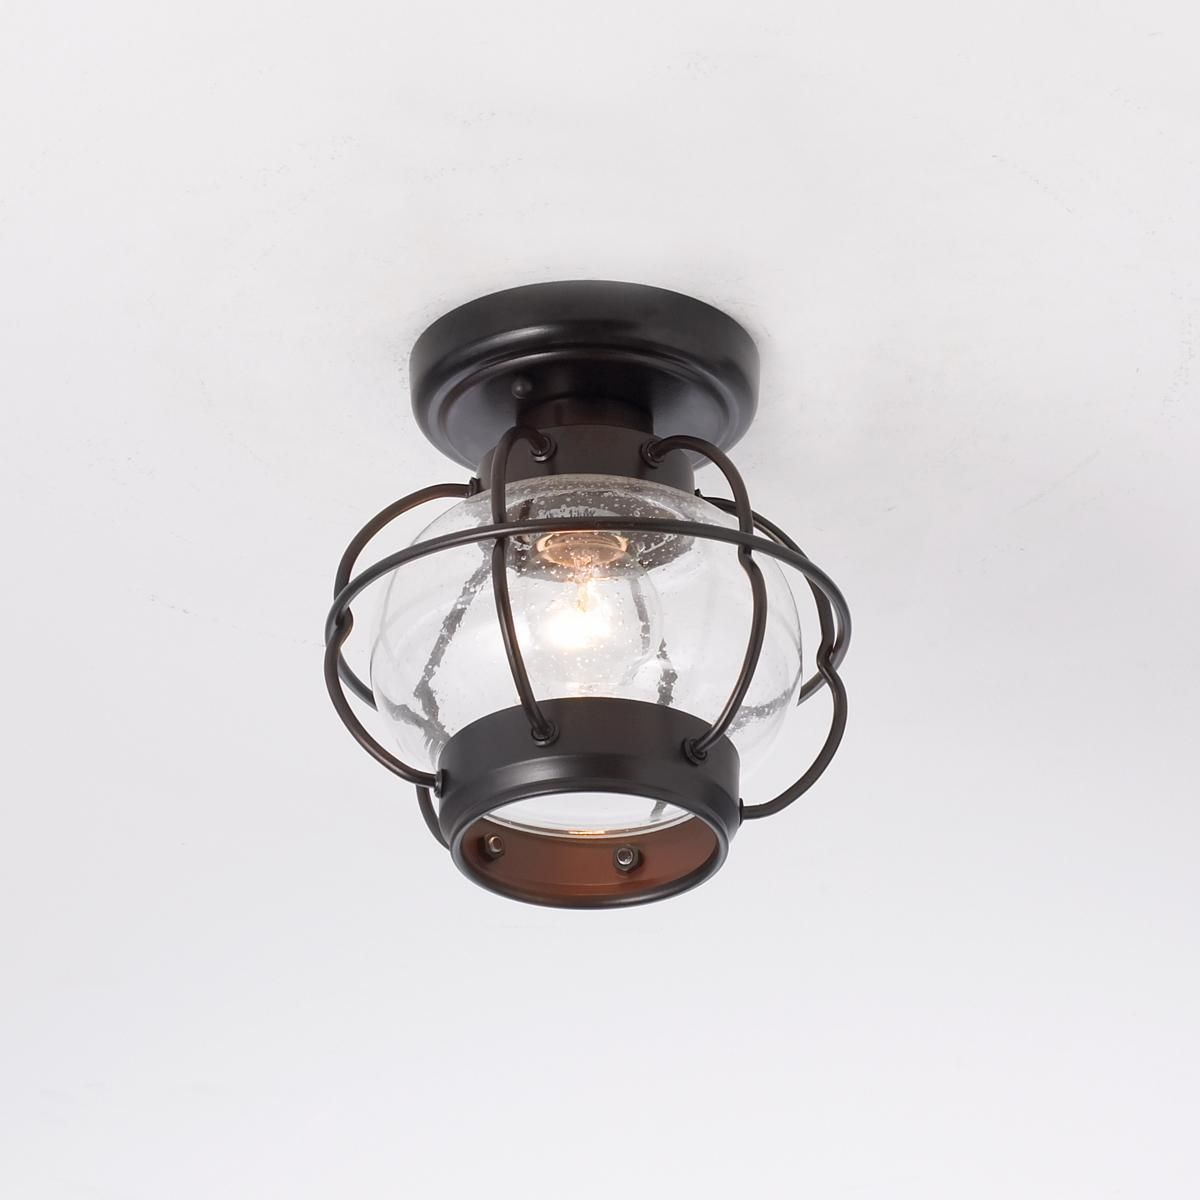 nautical onion outdoor ceiling light from new england. Black Bedroom Furniture Sets. Home Design Ideas